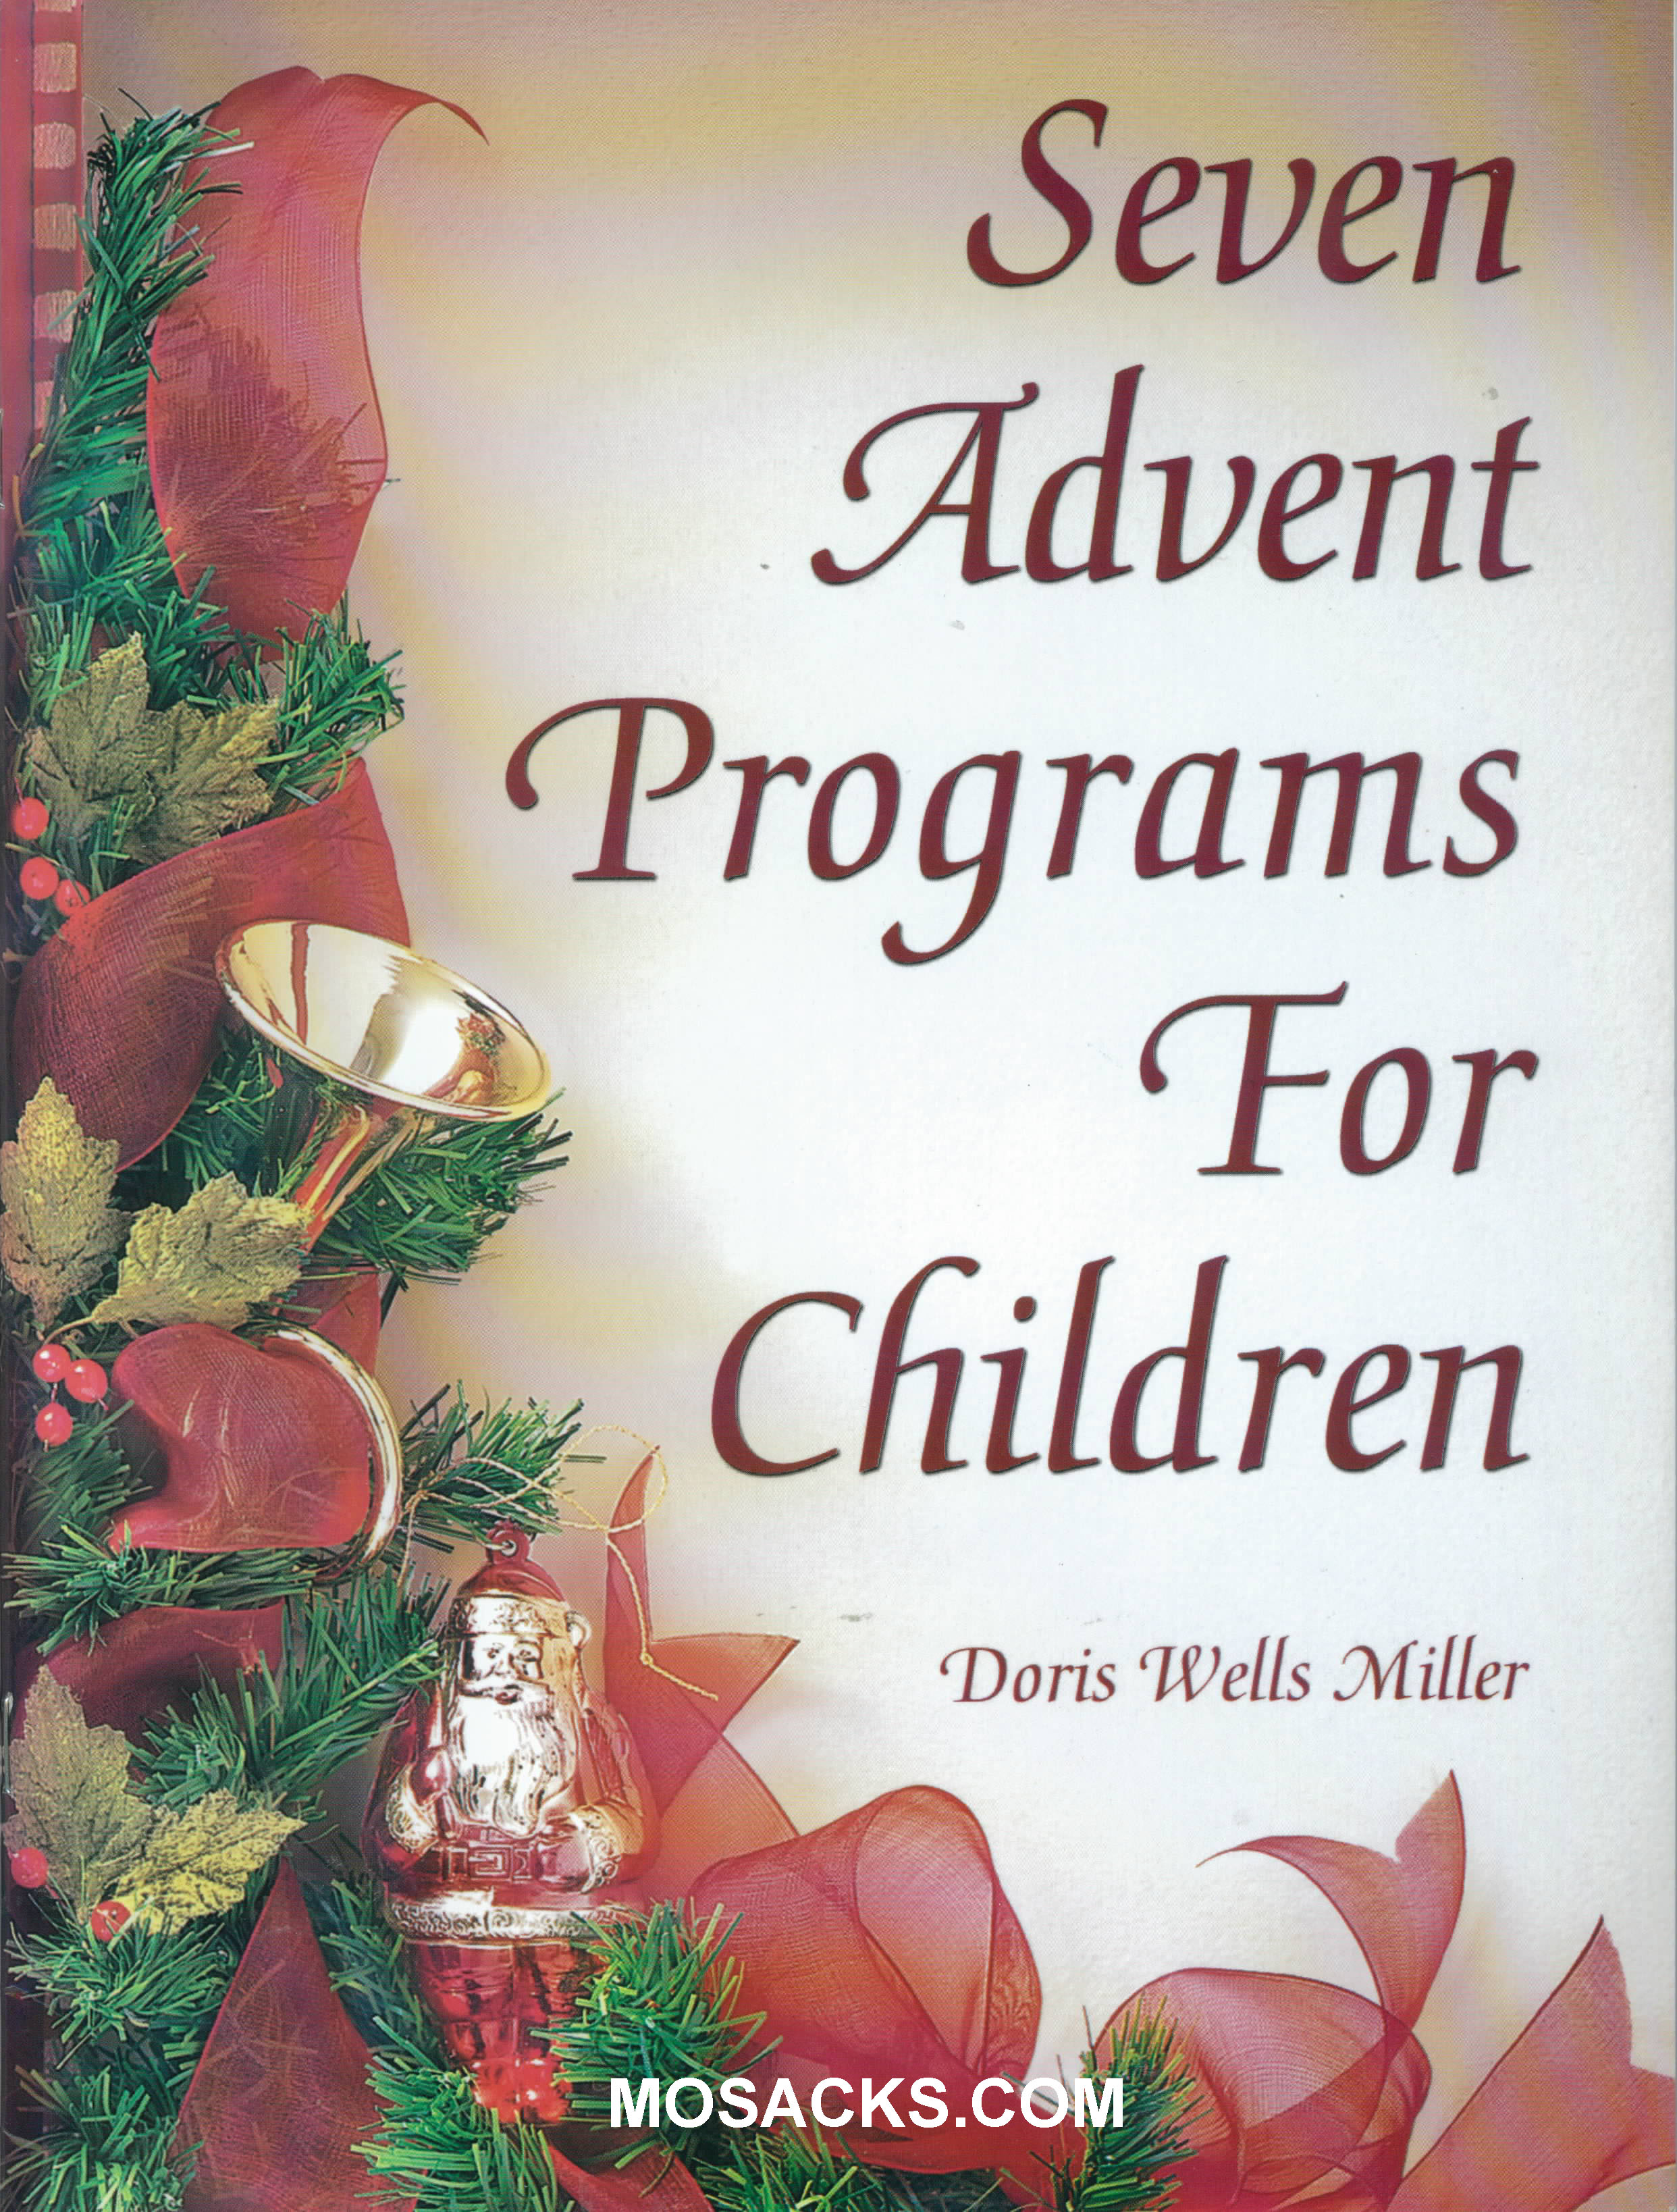 Seven Advent Programs for Children by Doris Wells Miller 108-9780788019111